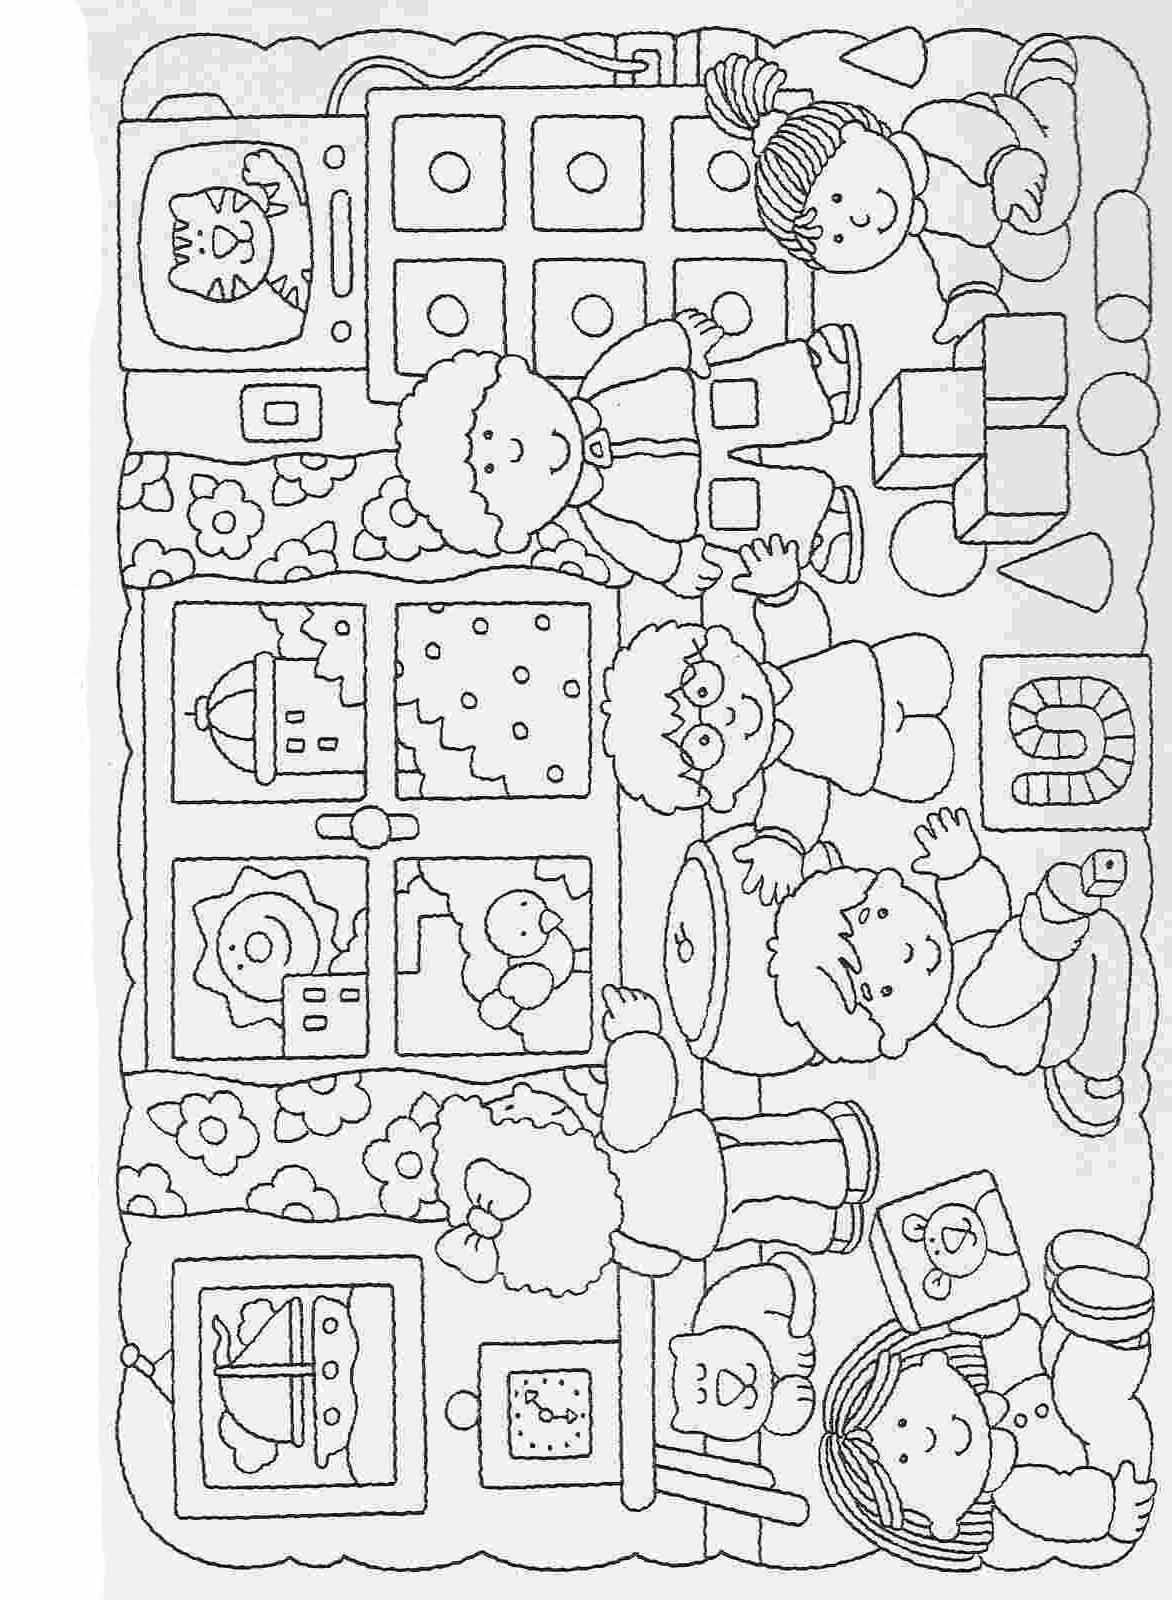 elementary school coloring pages free printable teacher coloring page download it at https pages school coloring elementary